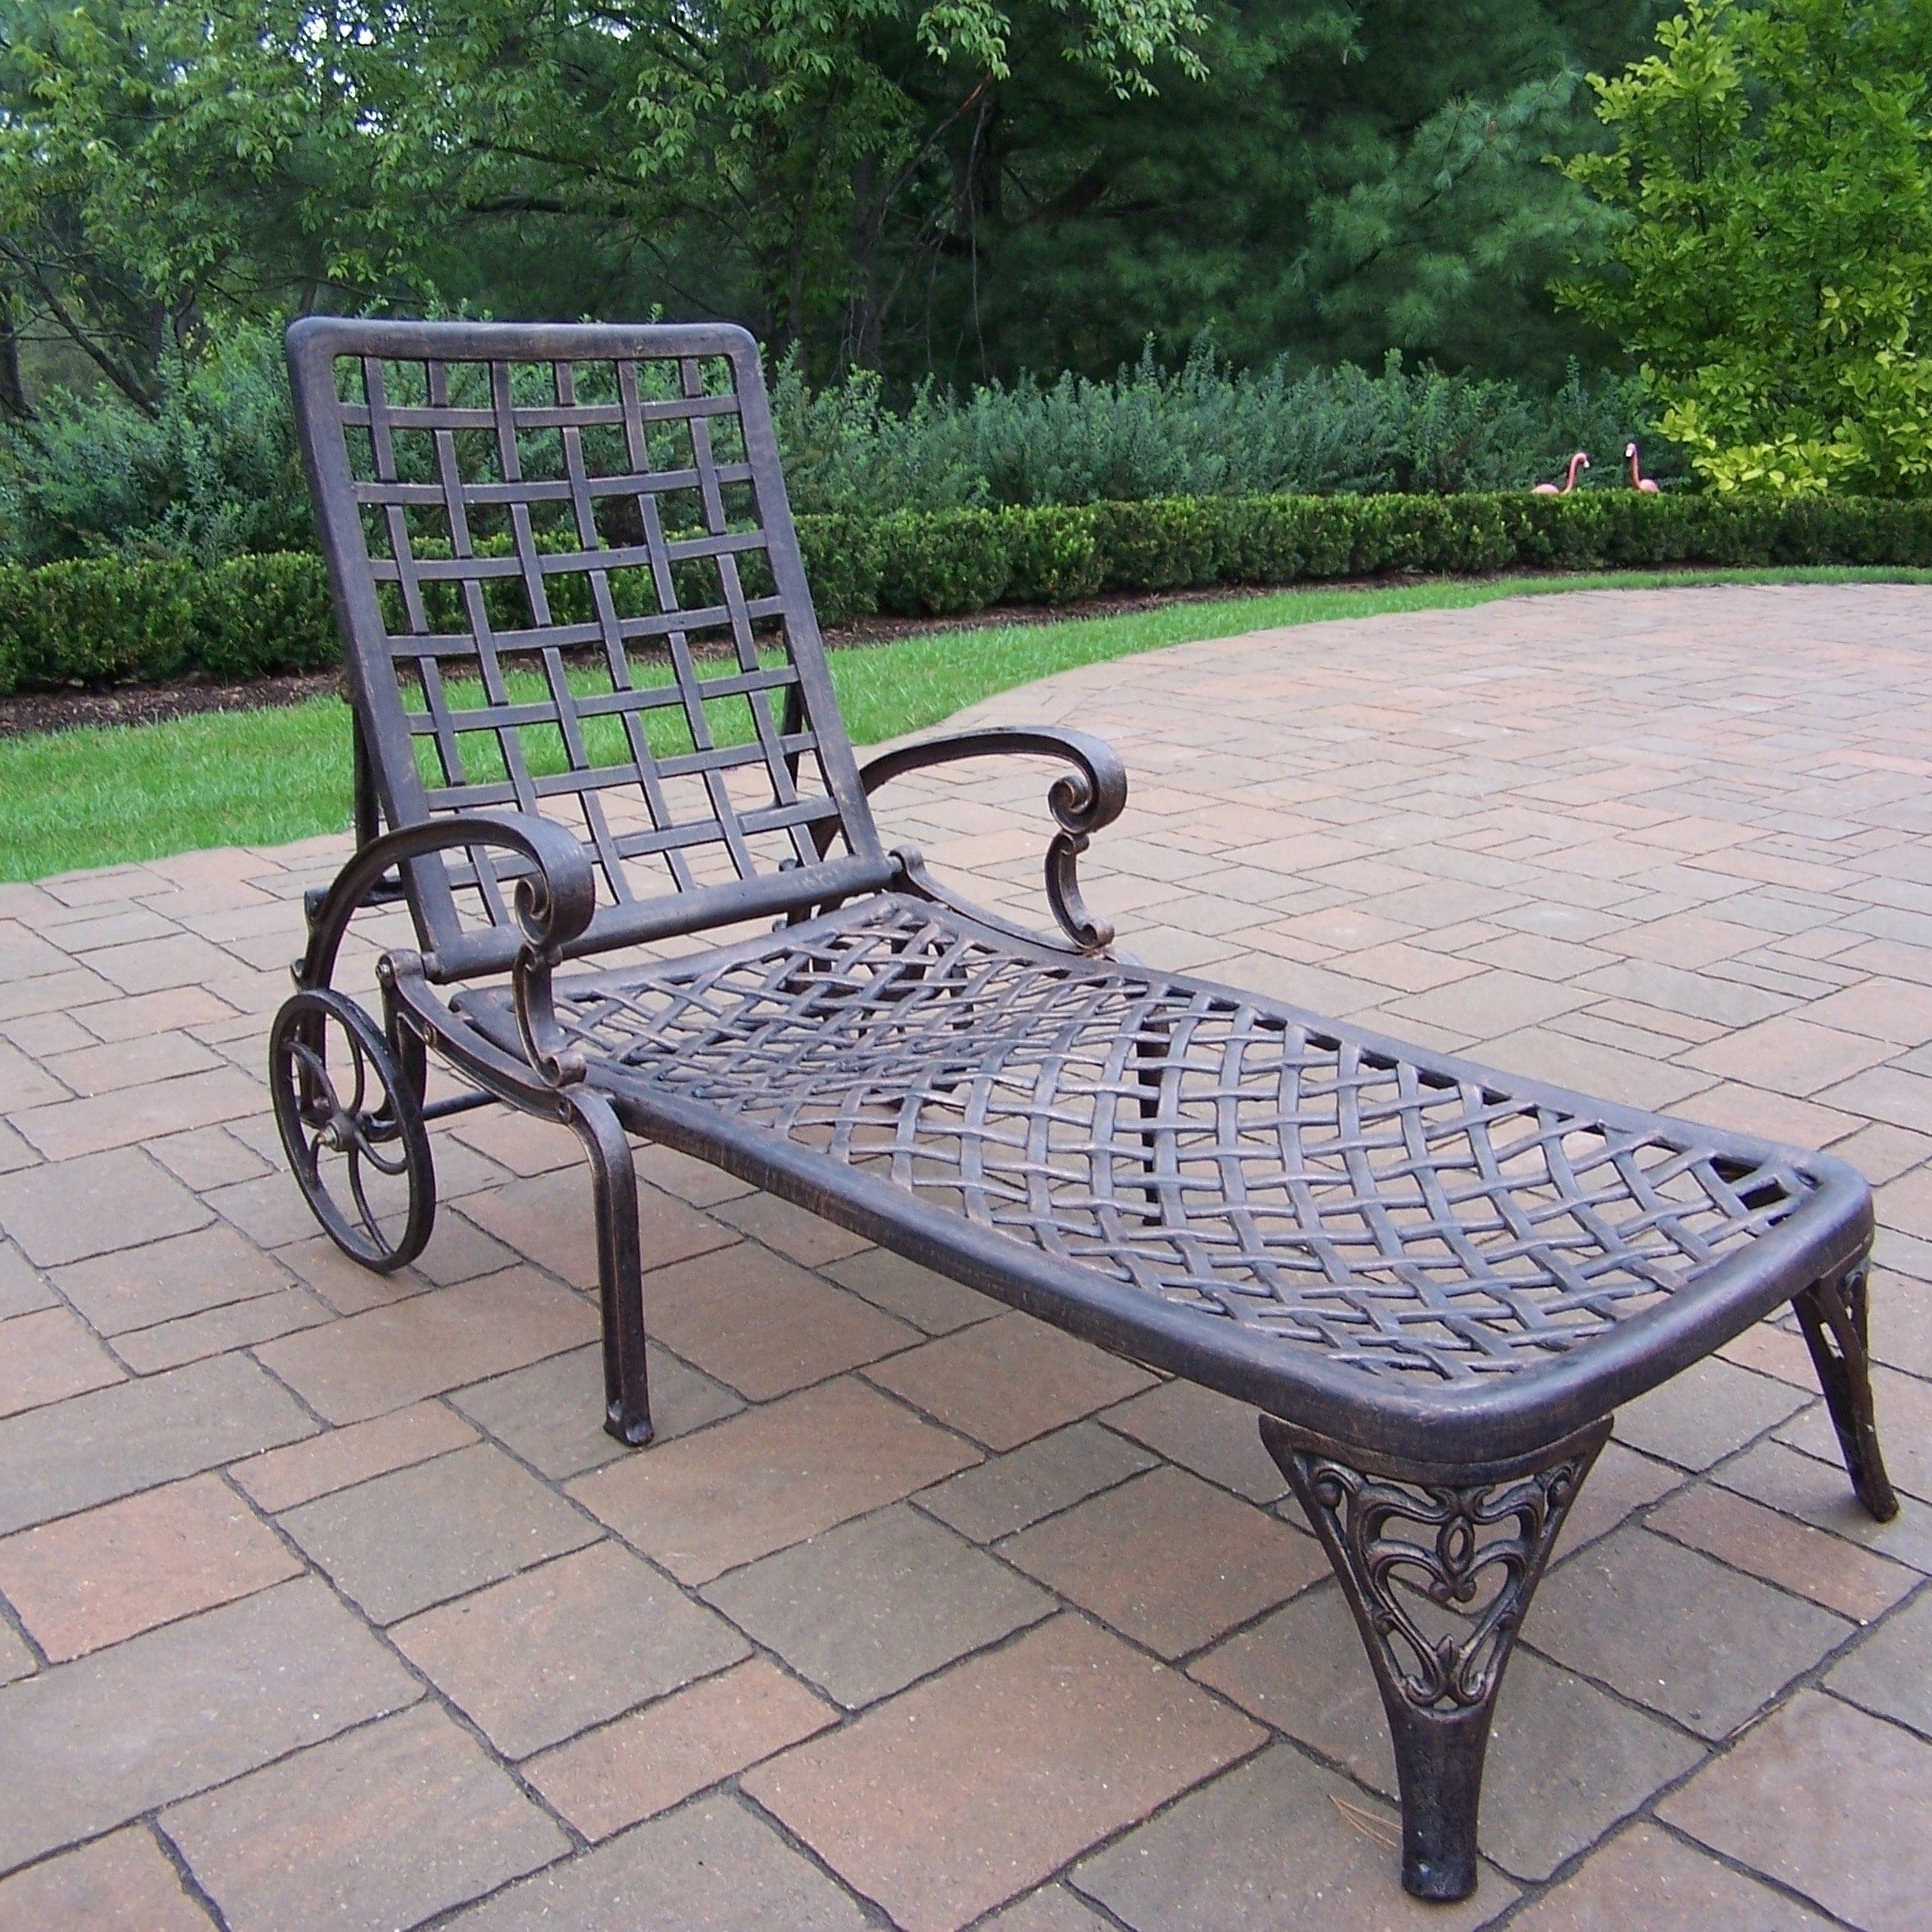 Recent Details About Havenside Home Robbinston Cast Aluminum Wheeled Chaise Lounge Pertaining To Havenside Home Surfside Rutkoske Outdoor Wood Chaise Lounges (View 18 of 25)